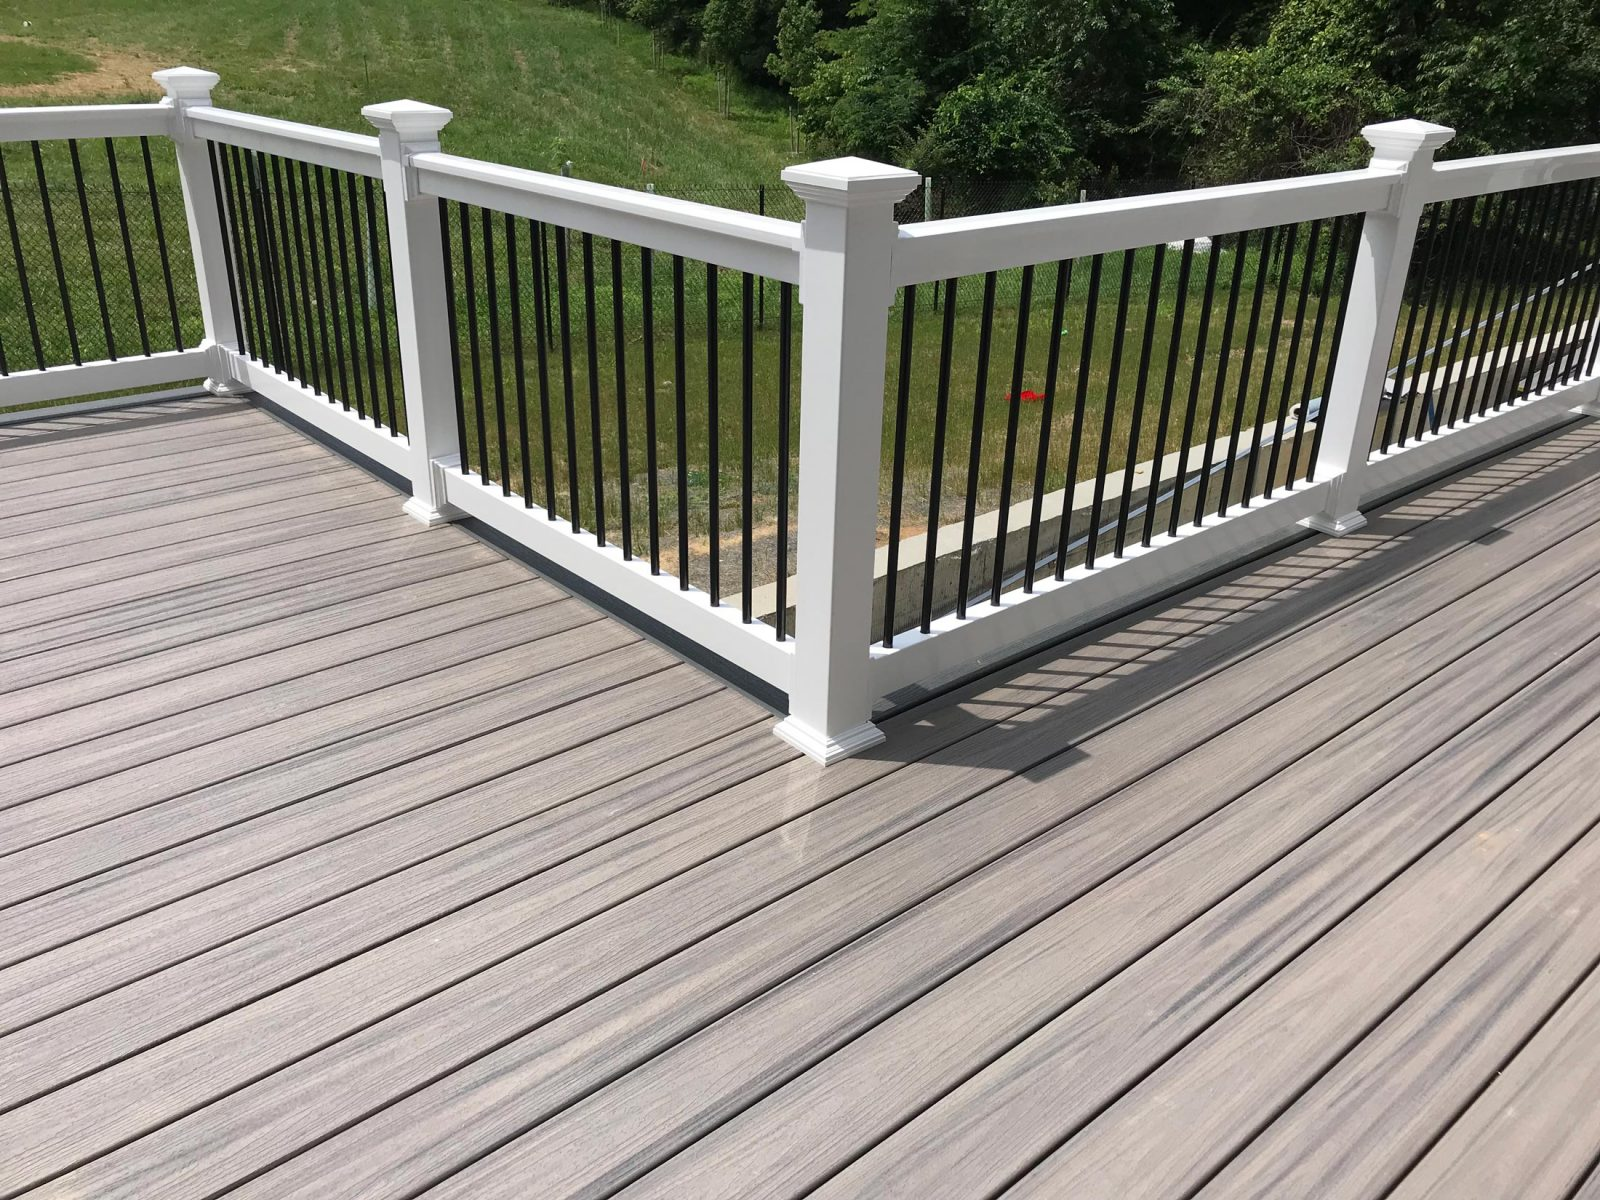 Deck and patio design in West Friendship, MD